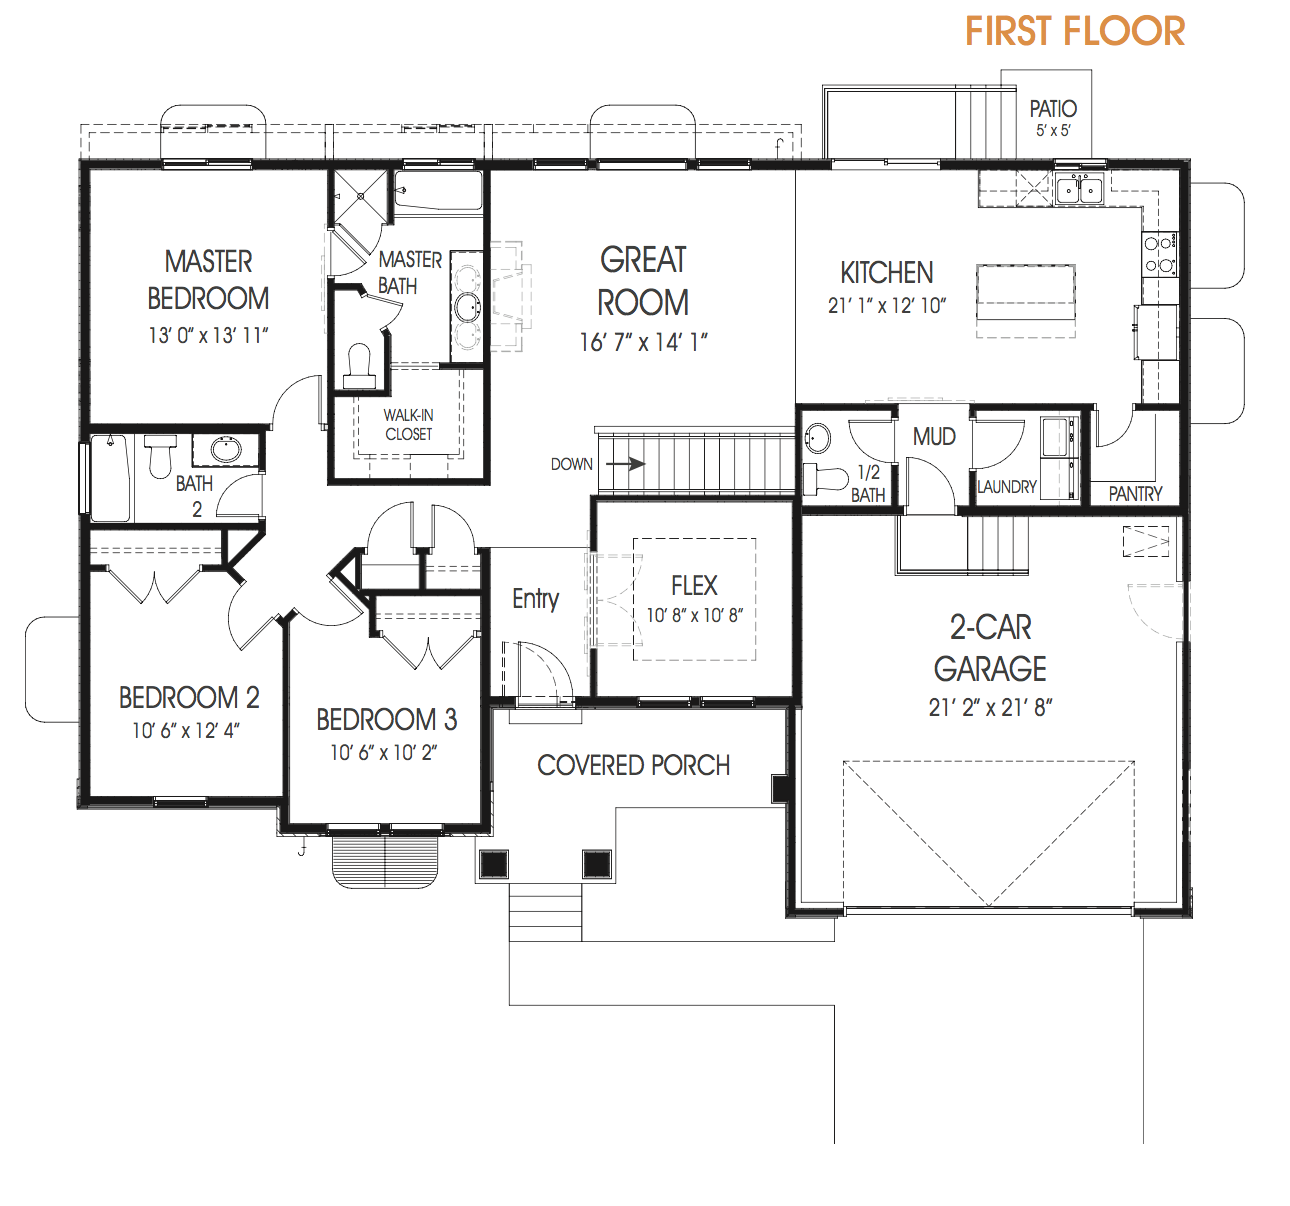 3 Bedroom Rambler Floor Plan For Your New Utah Home The Hailey Is Just What You Are Looking For In A Rambler C Floor Plans House Structure Design How To Plan